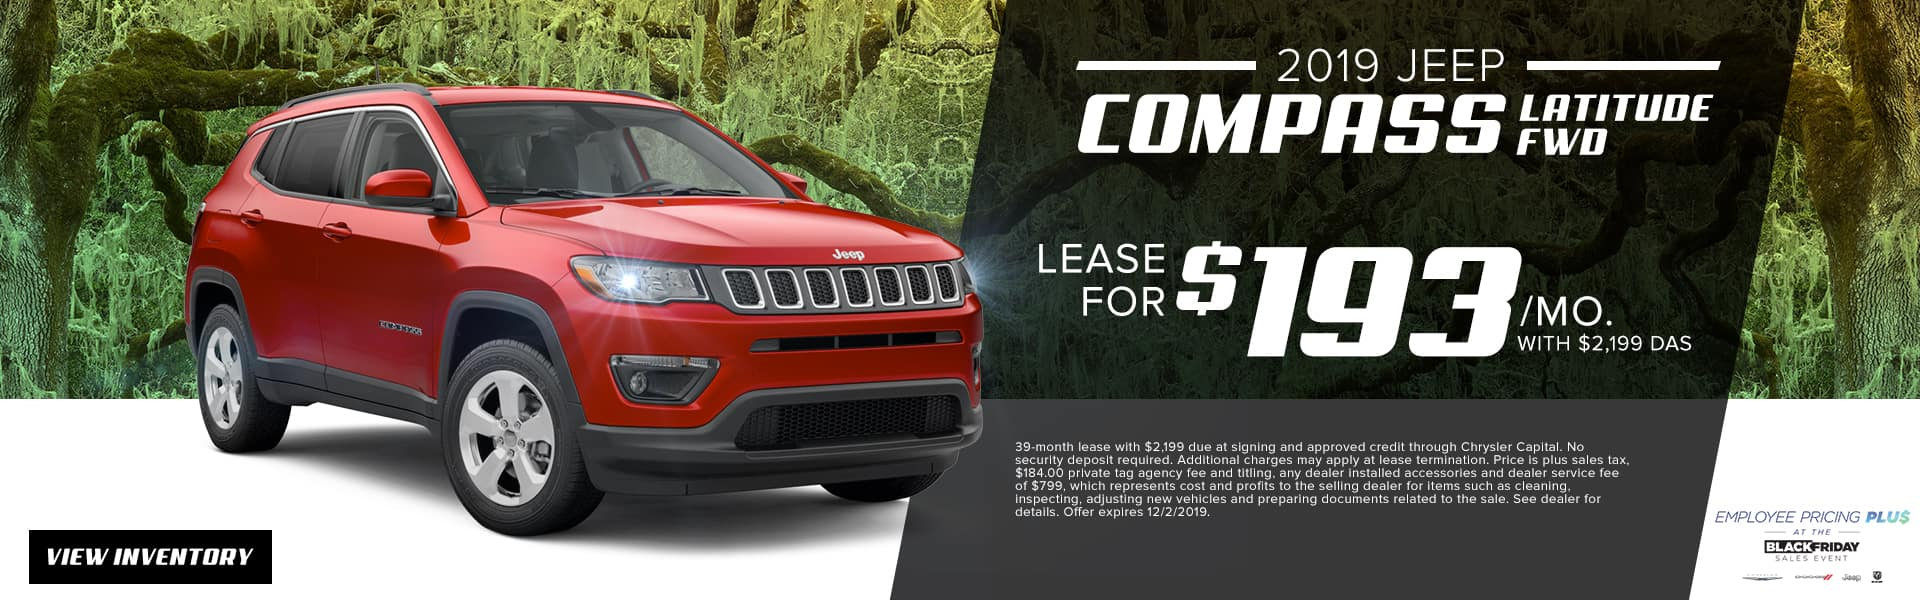 2019 Jeep Compass Latitude FWD | Lease For $193 Per Month With $2,199 Due At Signing